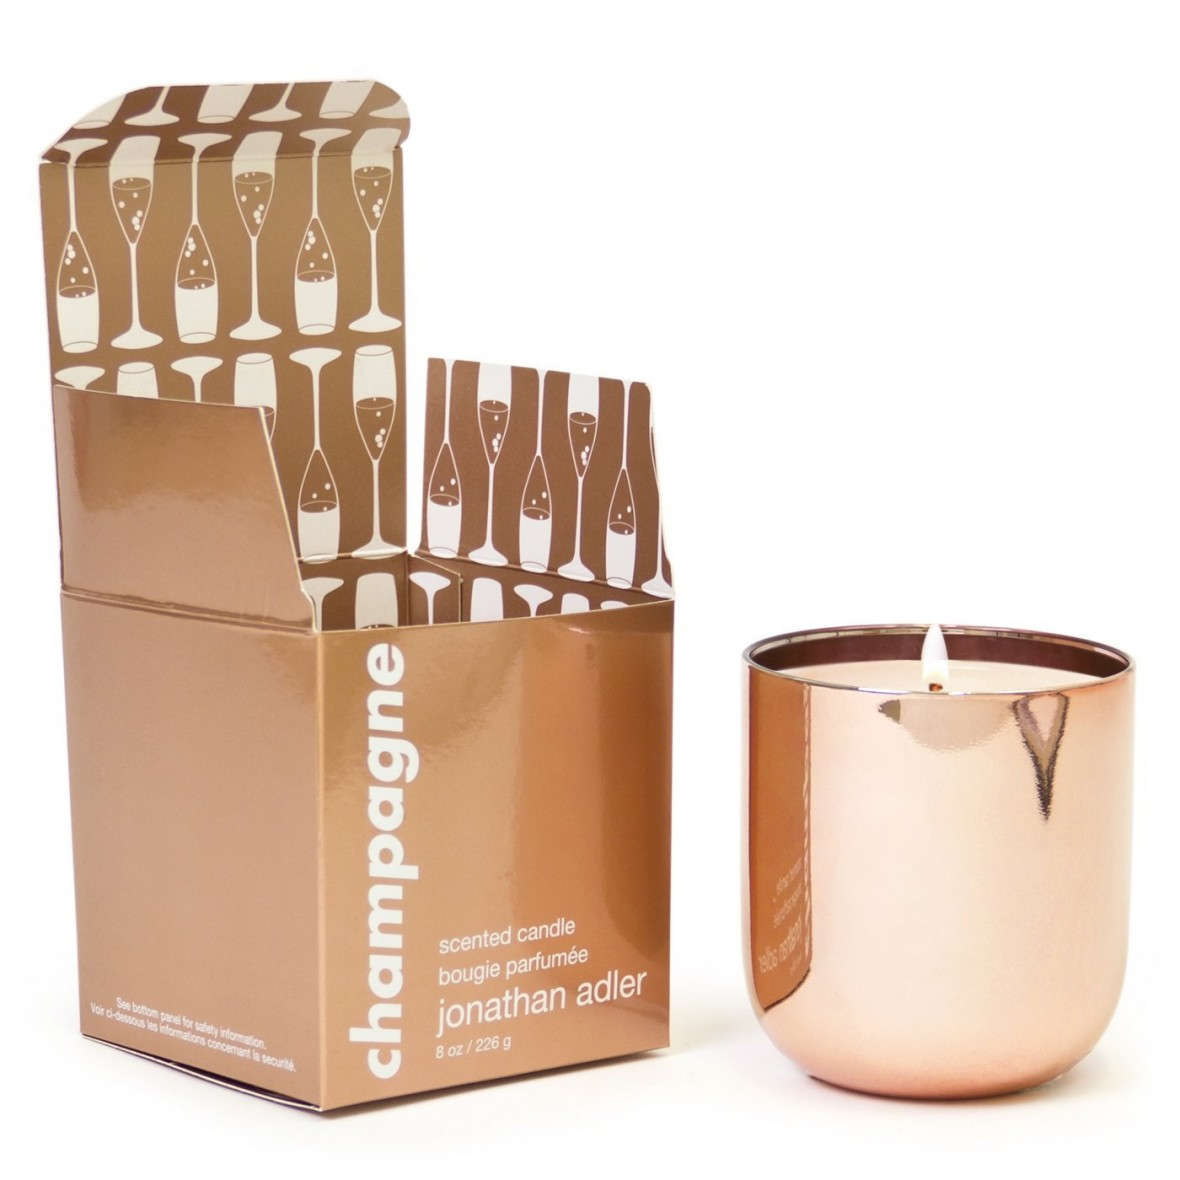 Hostess Gift Idea - Jonathan Adler Champagne Candle